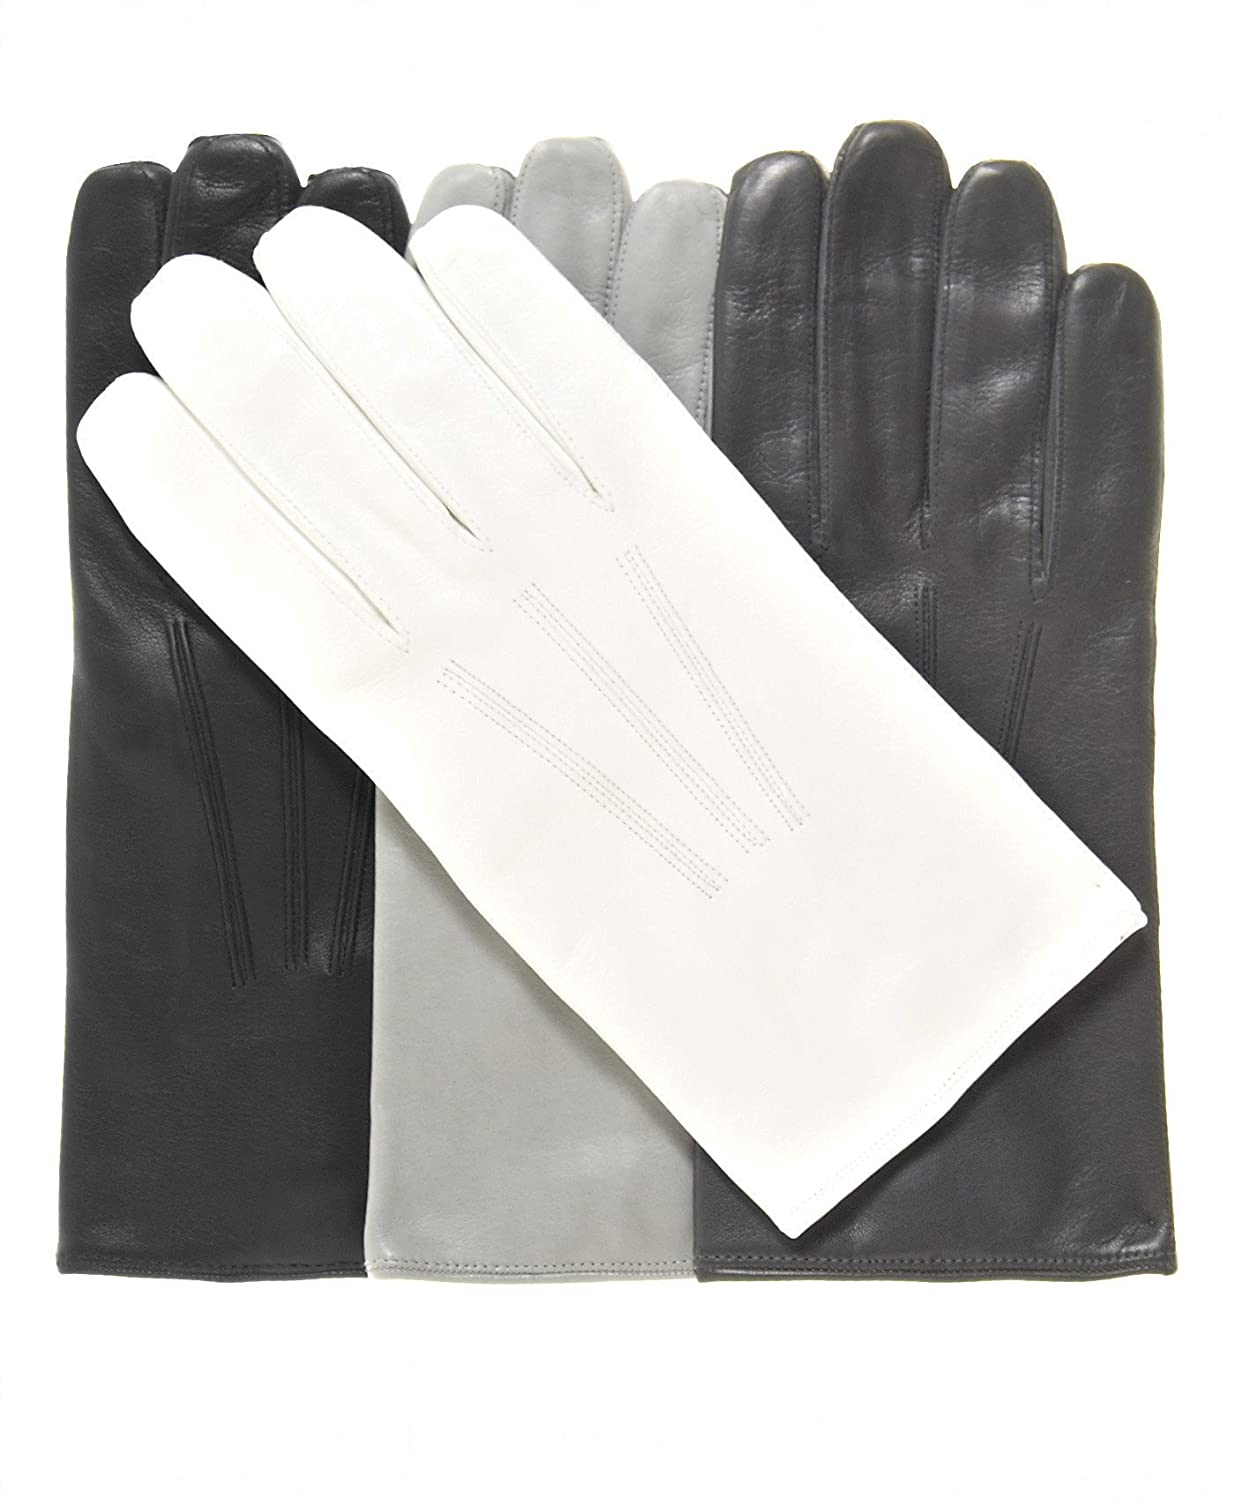 1920s Mens Evening Wear Step By Step Mens Lined Lambskin Leather Gloves with Wrist Snap $99.95 AT vintagedancer.com